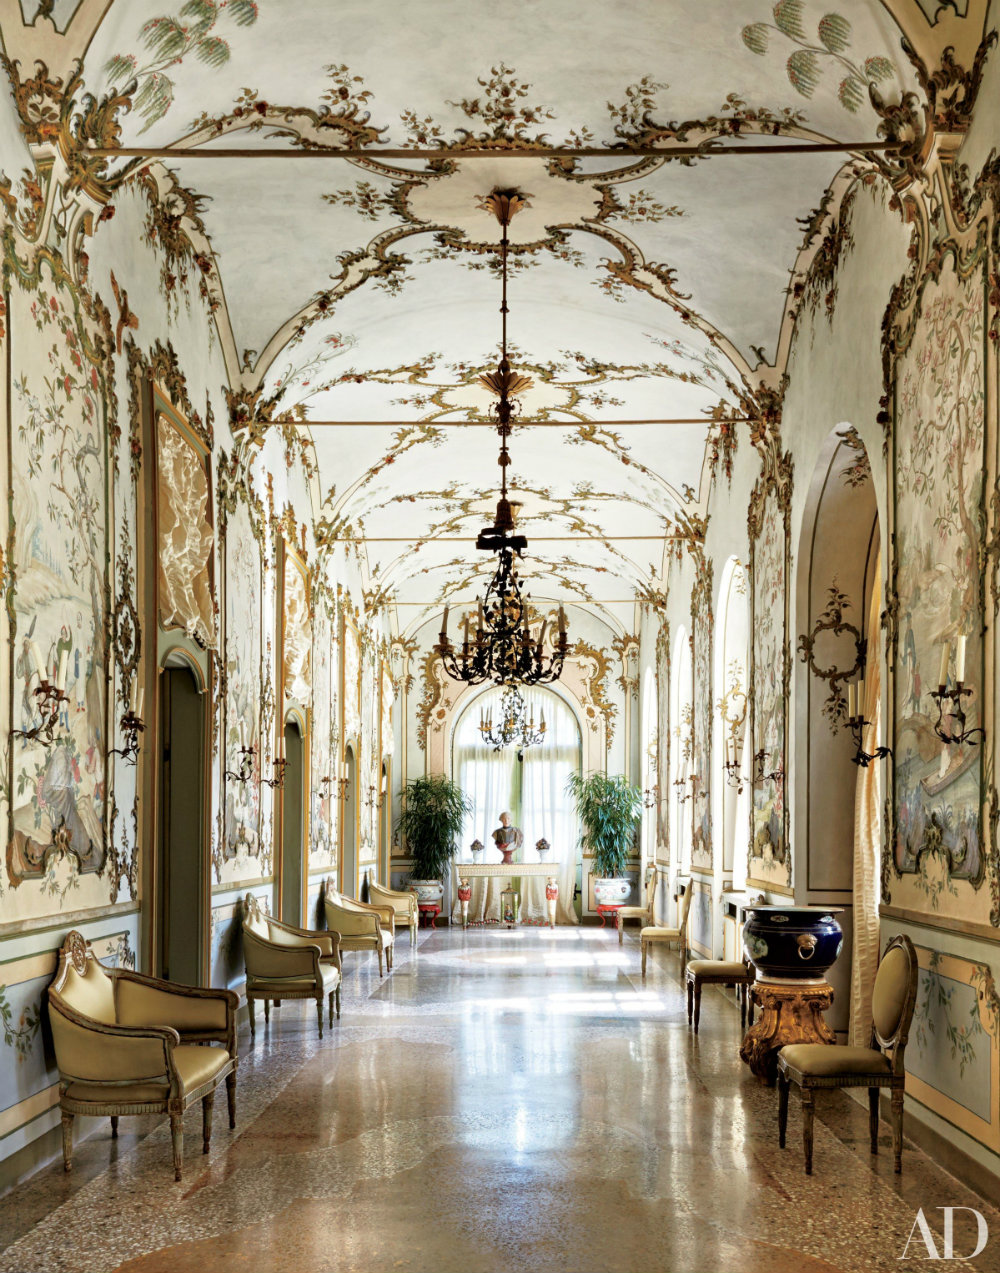 The Most Striking Italian Interiors 04 striking italian interiors The Most Striking Italian Interiors The Most Striking Italian Interiors 04